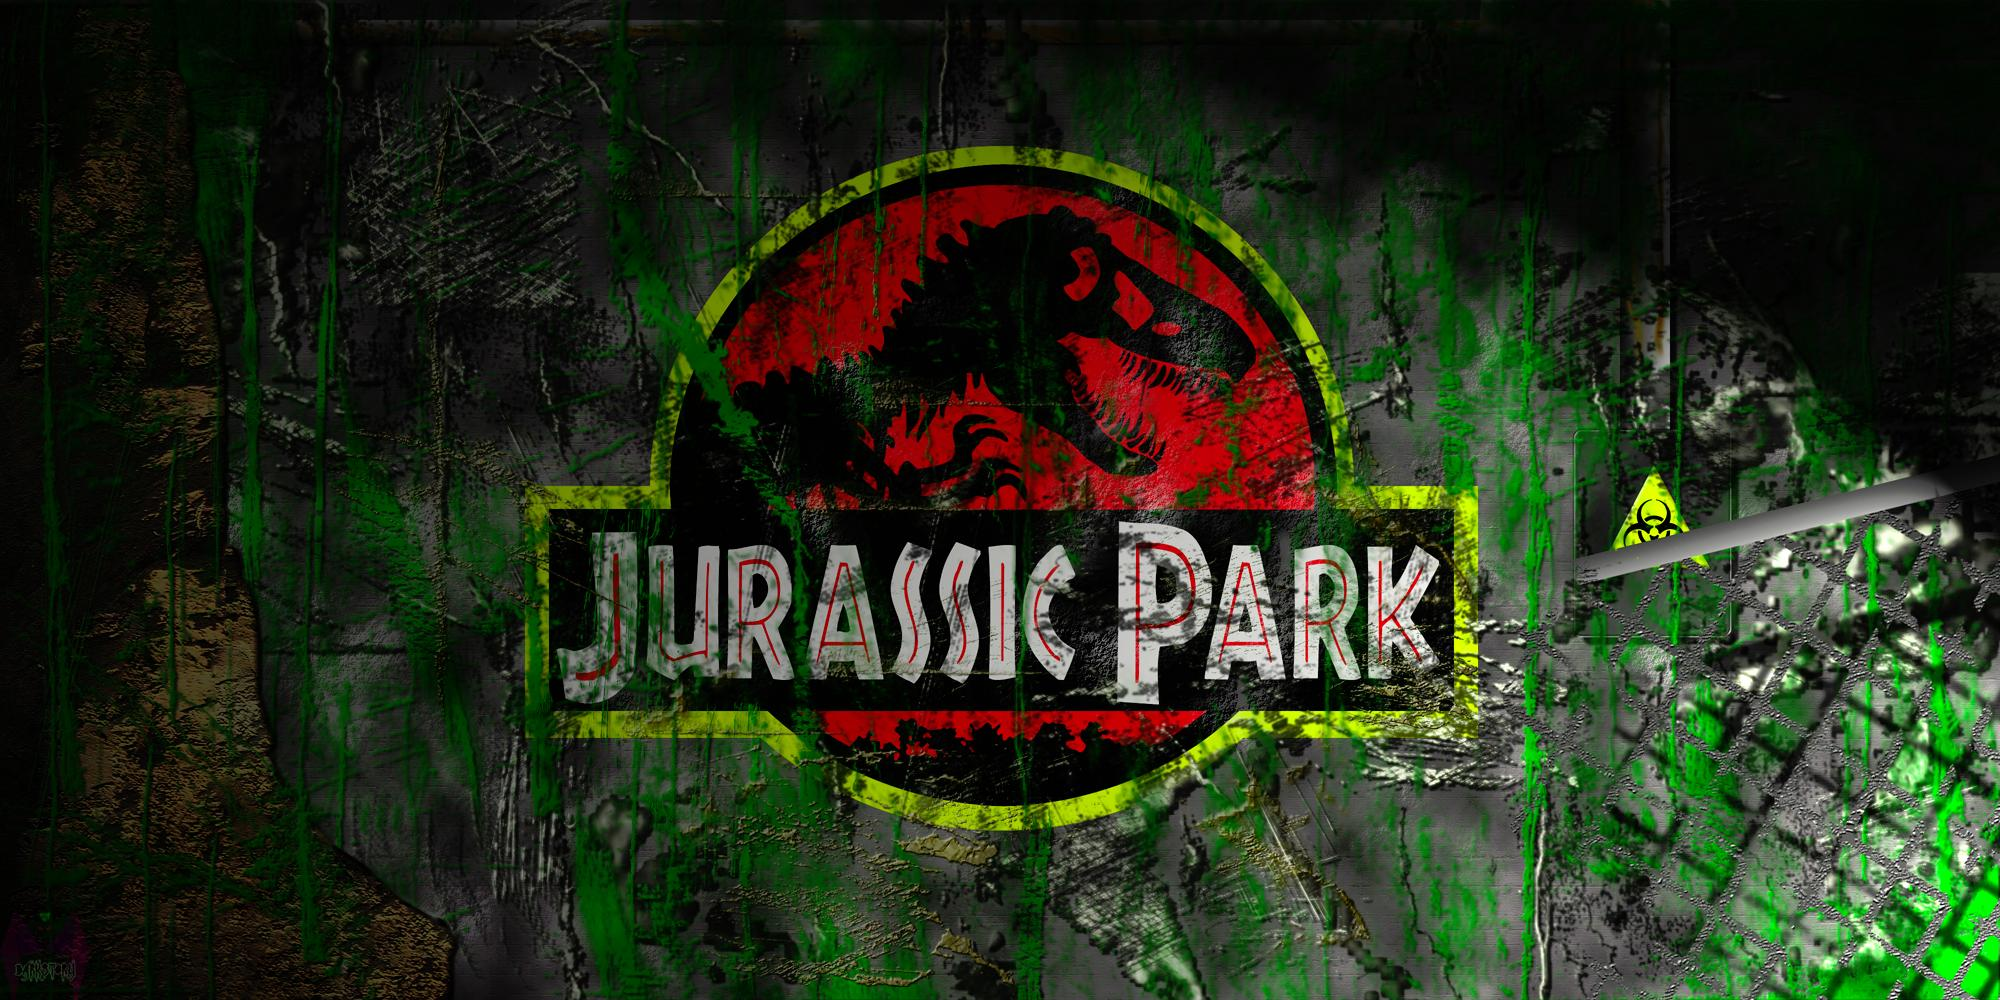 Jurassic Park Wallpaper image   Le Fancy Wallpapers   Mod DB 2000x1000